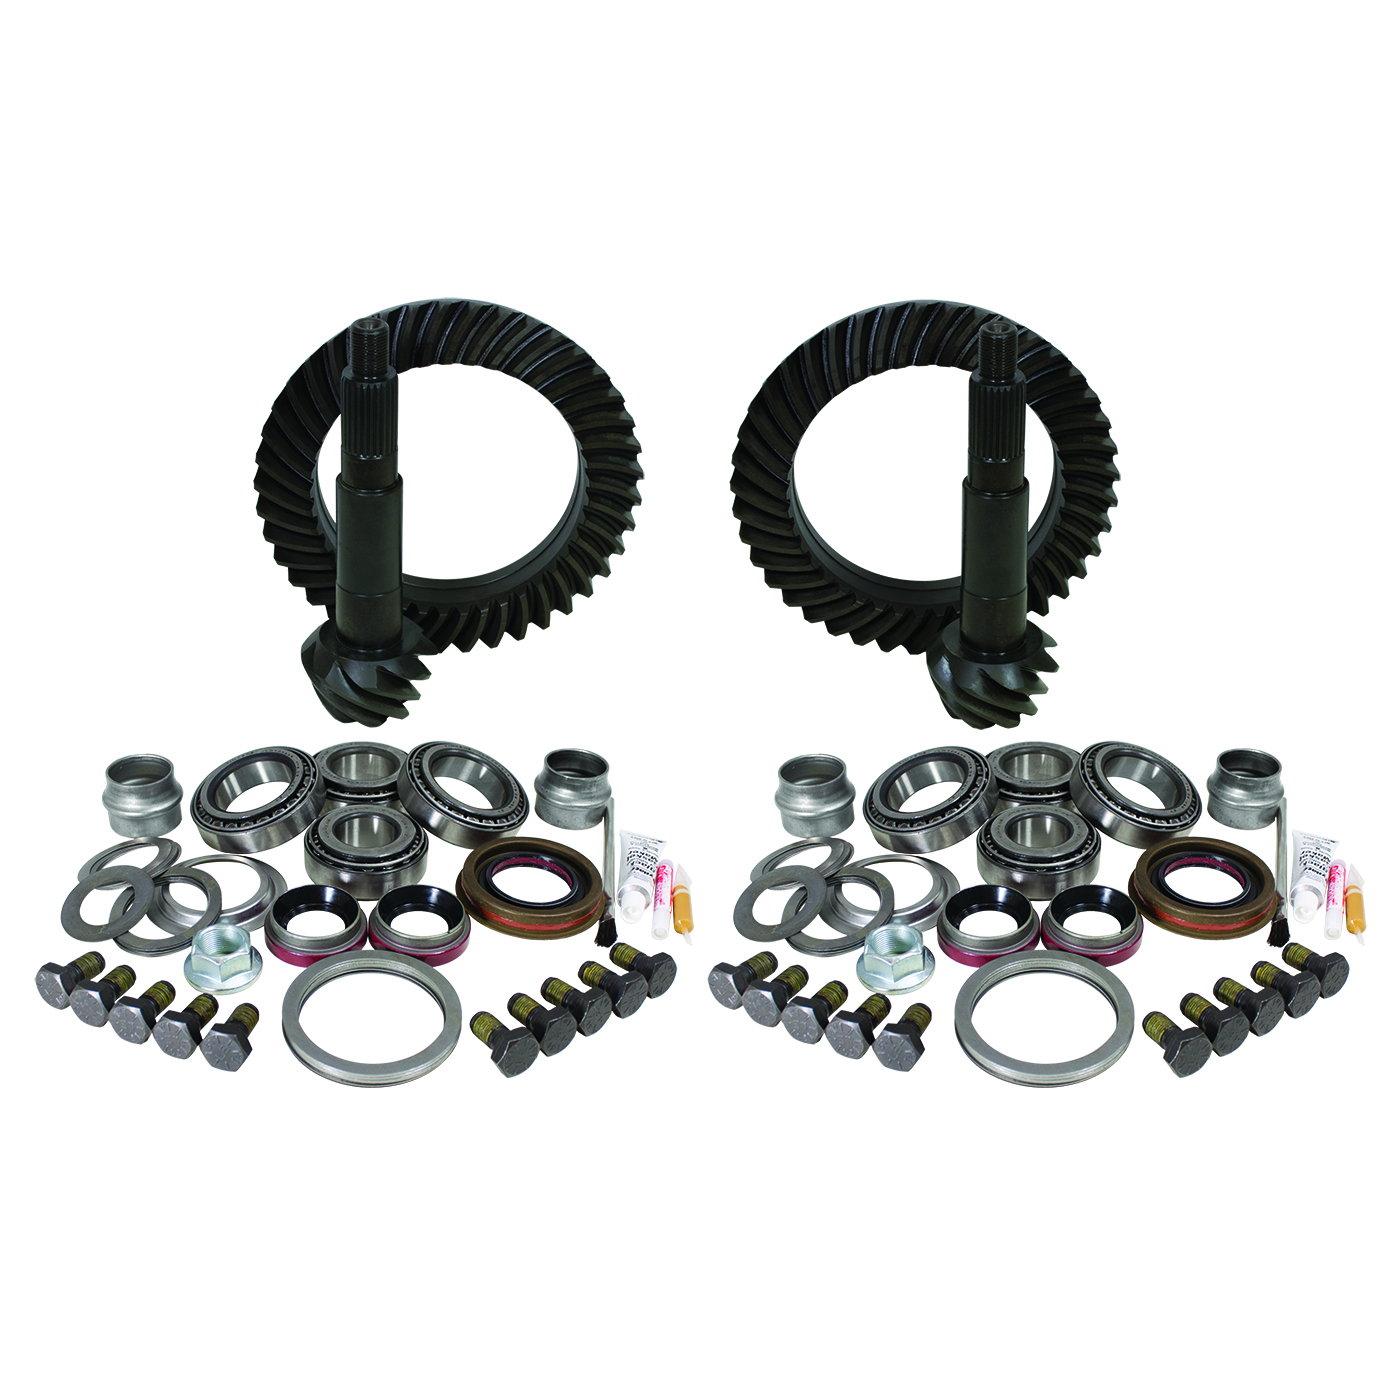 YGK009 - Yukon Gear & Install Kit package for Jeep TJ Rubicon, 4.56 ratio.